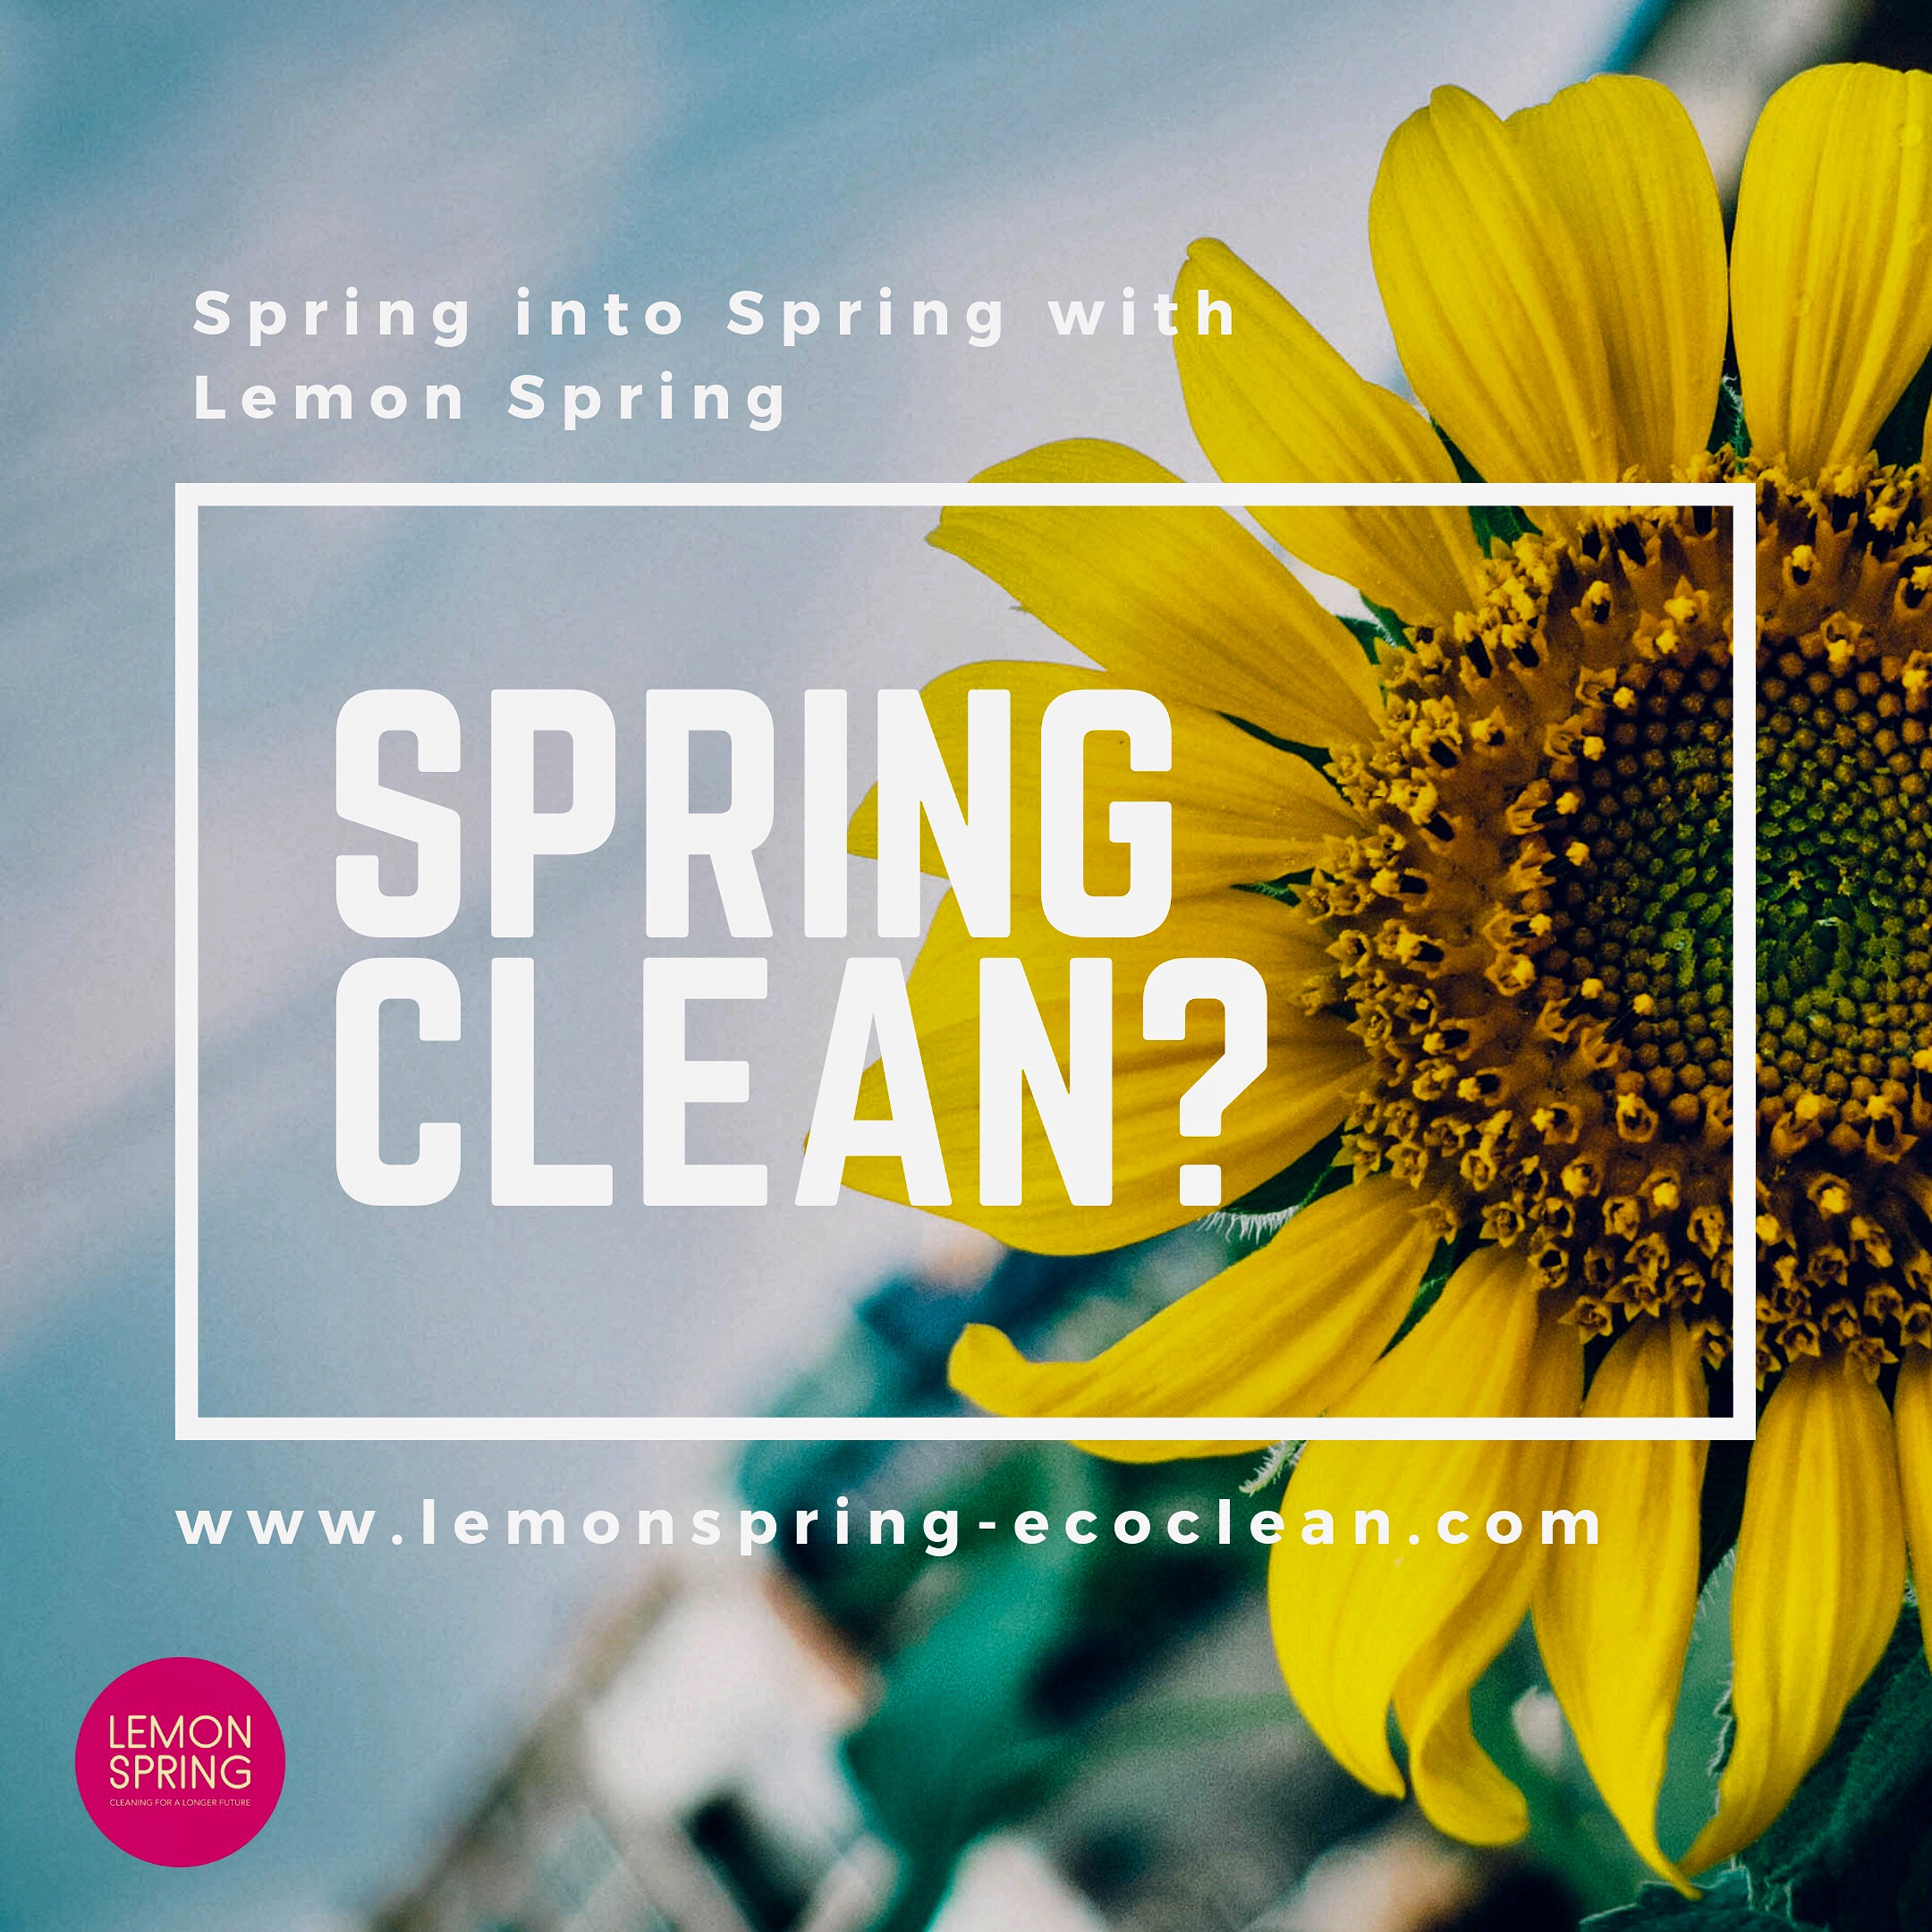 Lemon Spring - Eco Friendly Cleaning